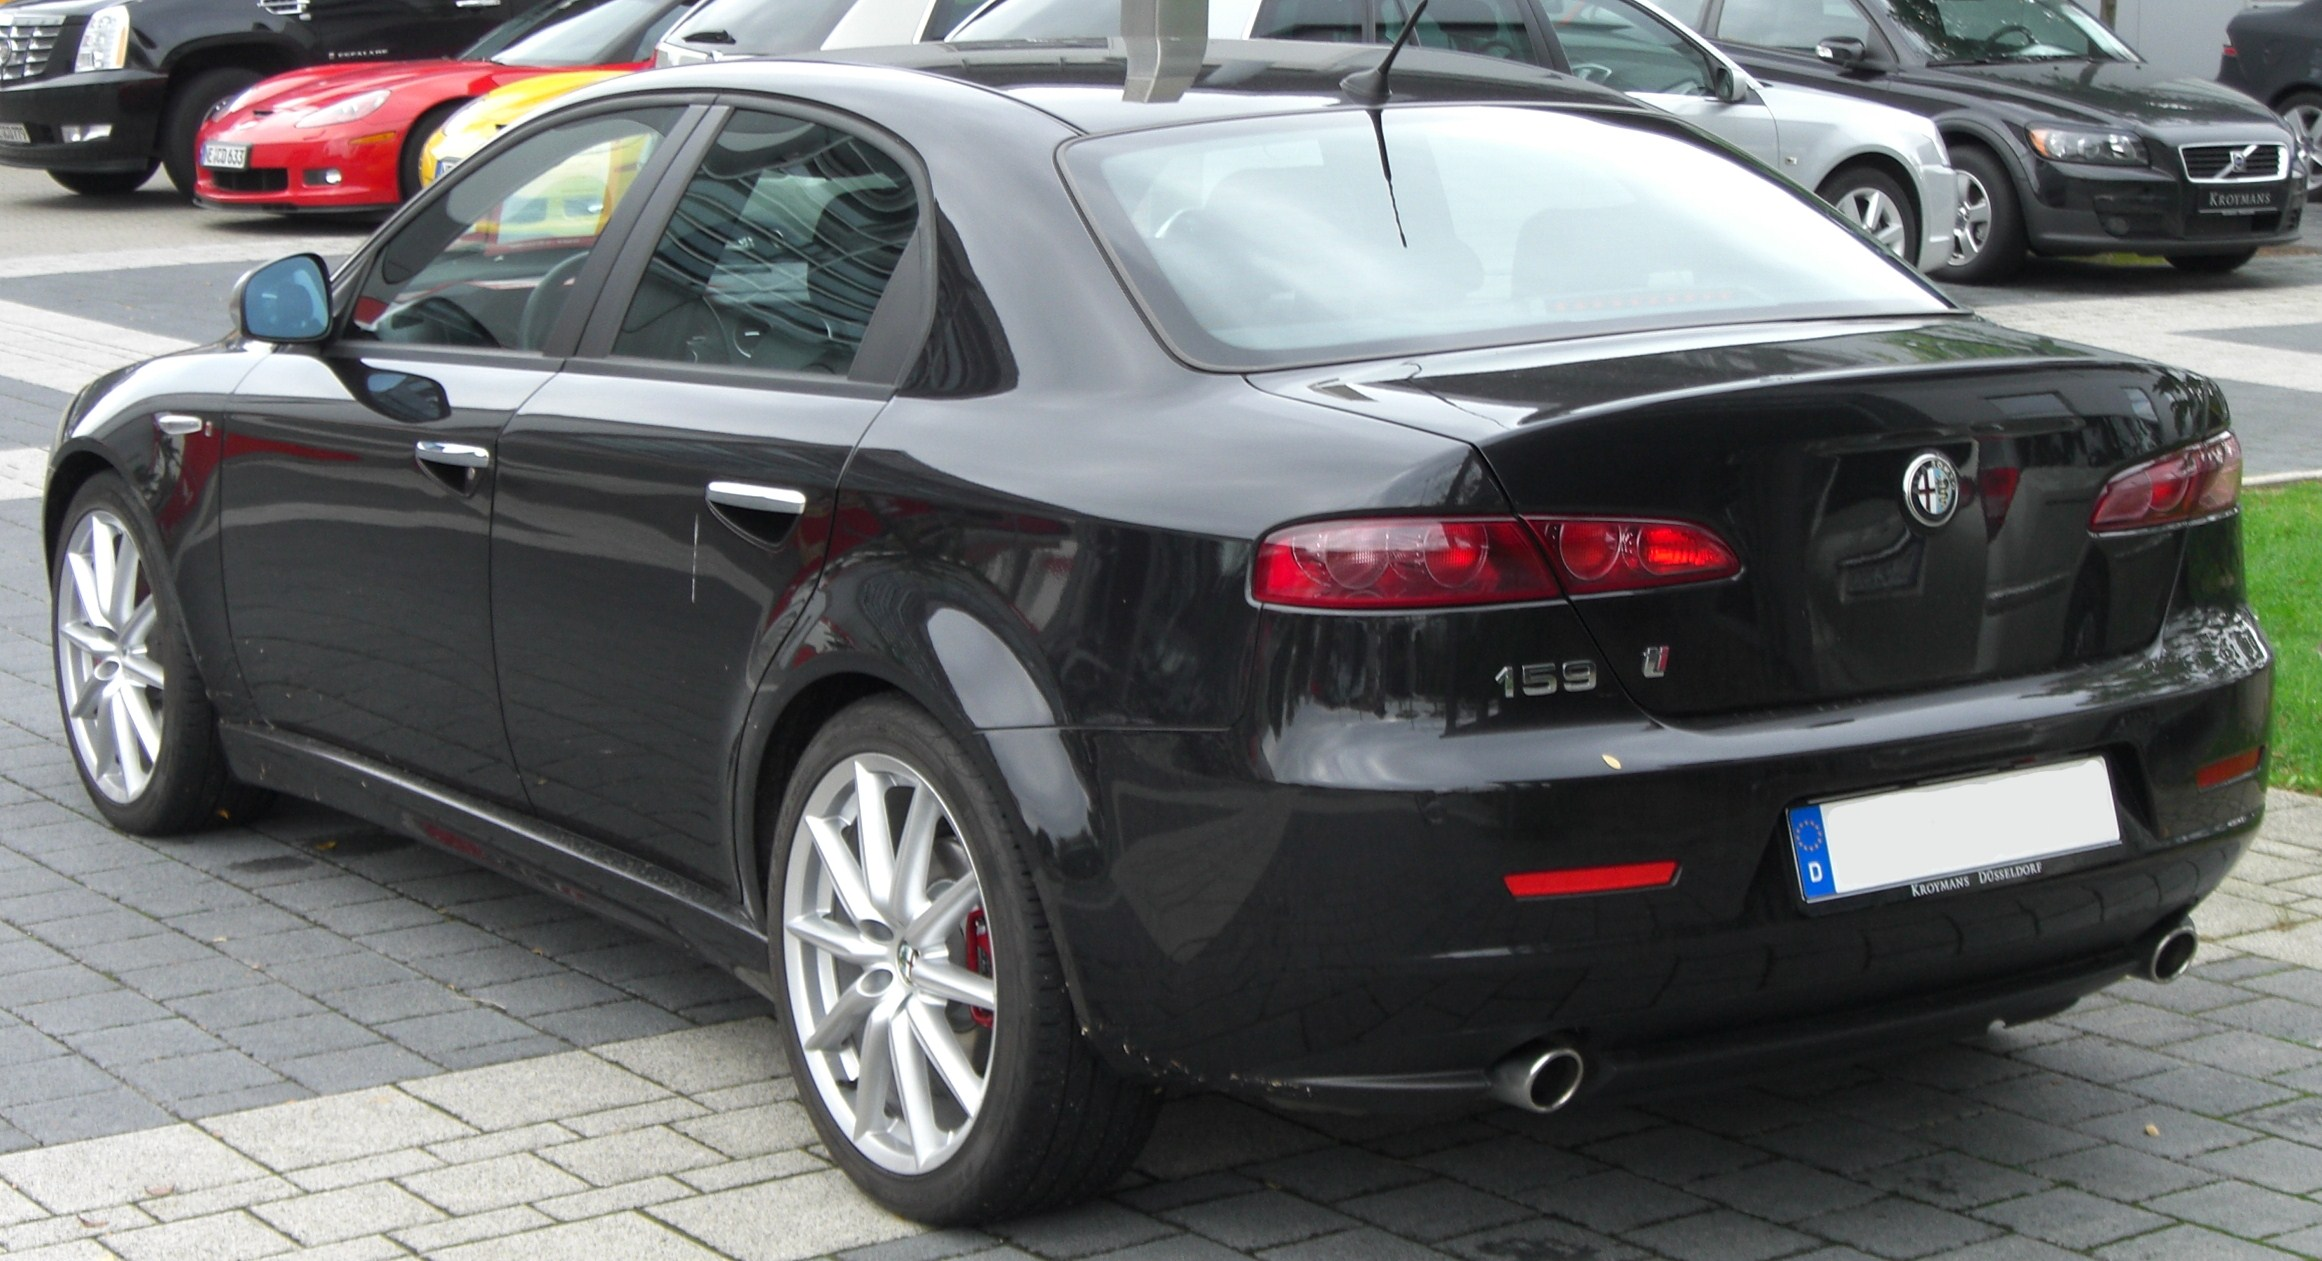 file alfa romeo 159 ti rear jpg wikimedia commons. Black Bedroom Furniture Sets. Home Design Ideas